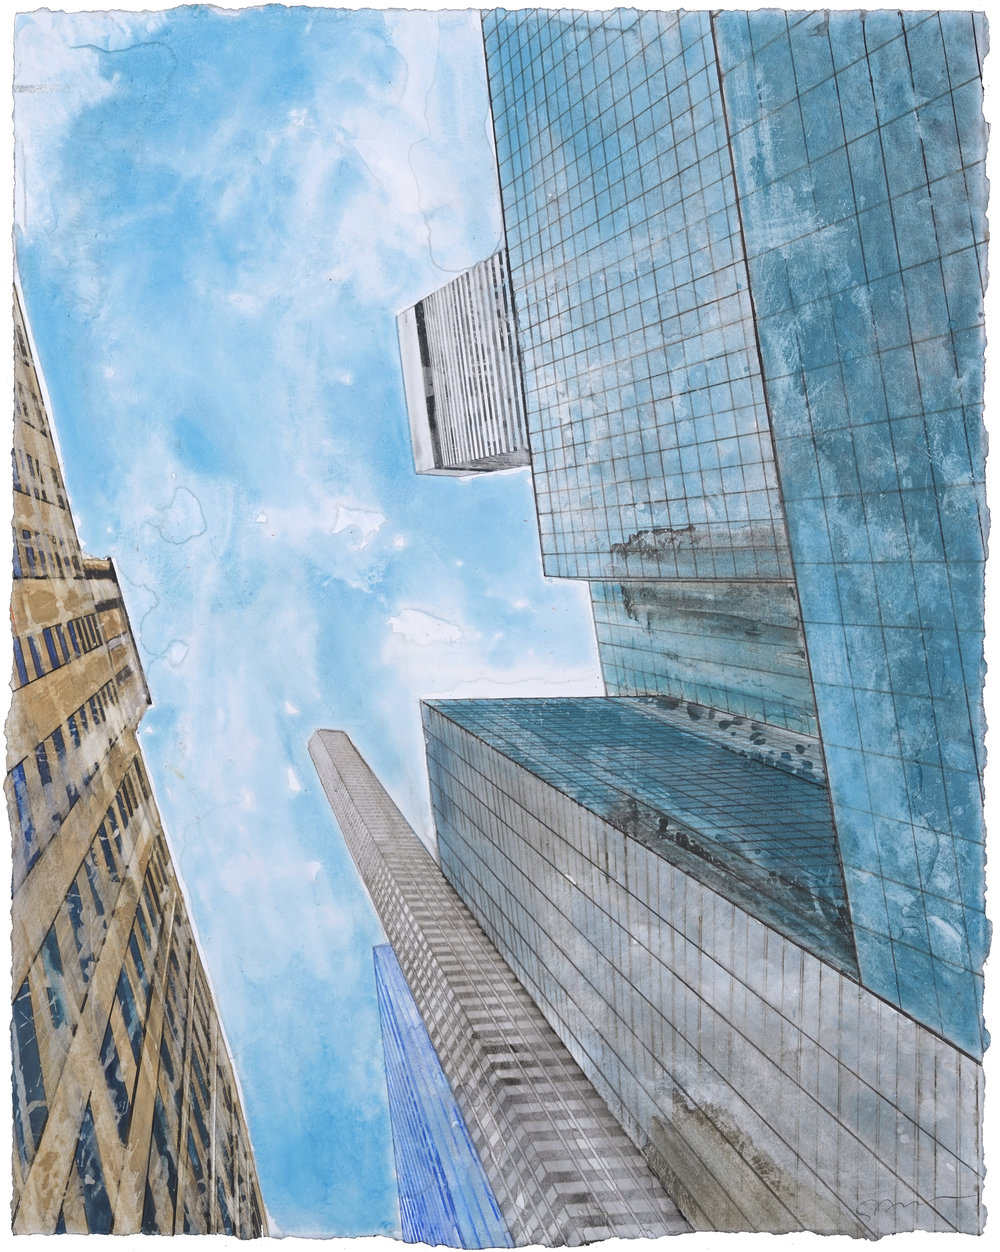 Hans Guck in die luft in New York II, watercolor, 61 x 48 cm, 24 x 19 in, 2016